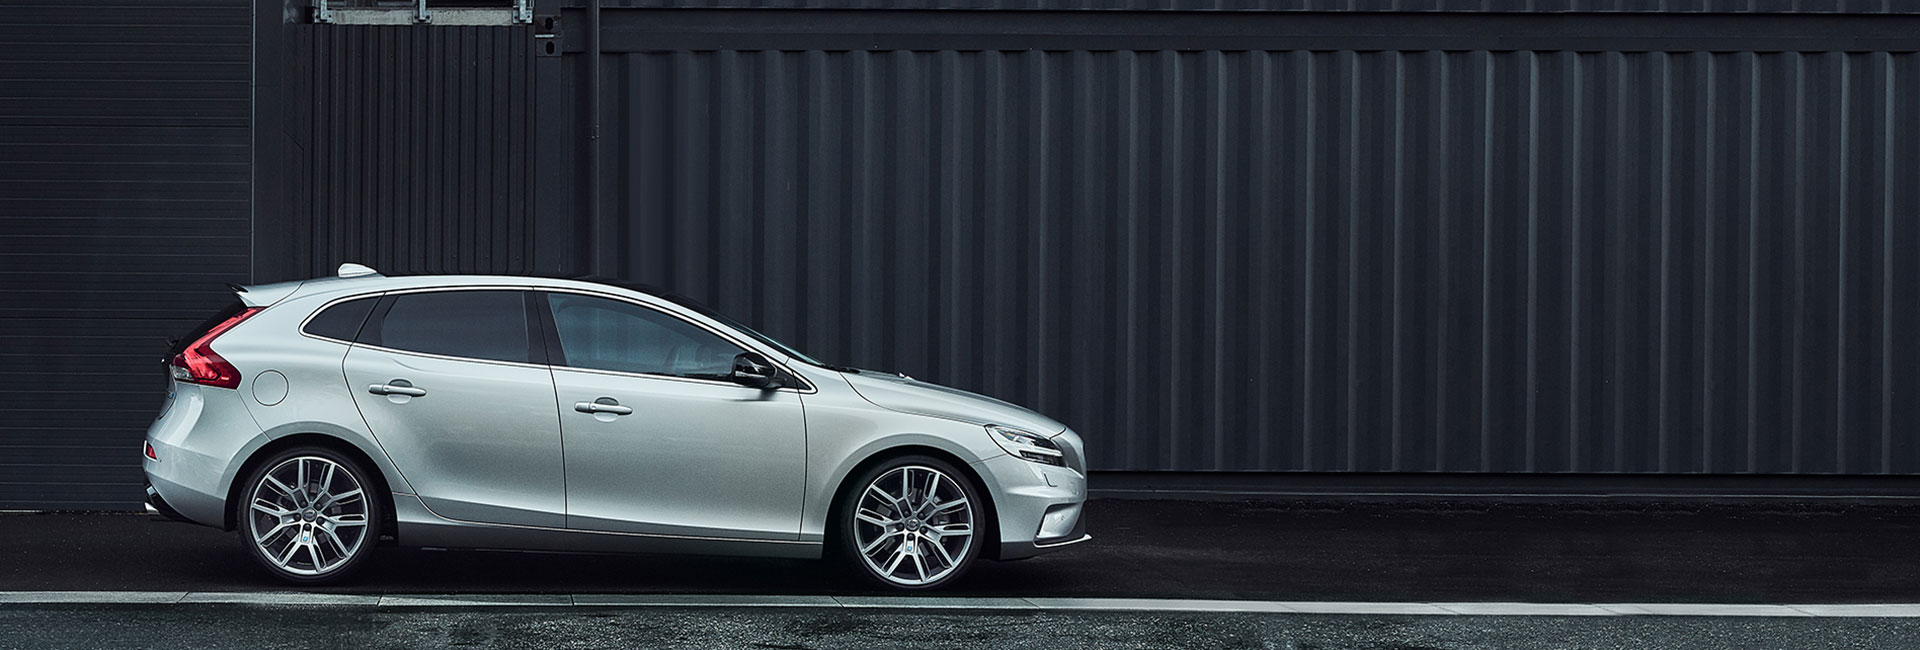 volvo-v40-r-design-header.jpg